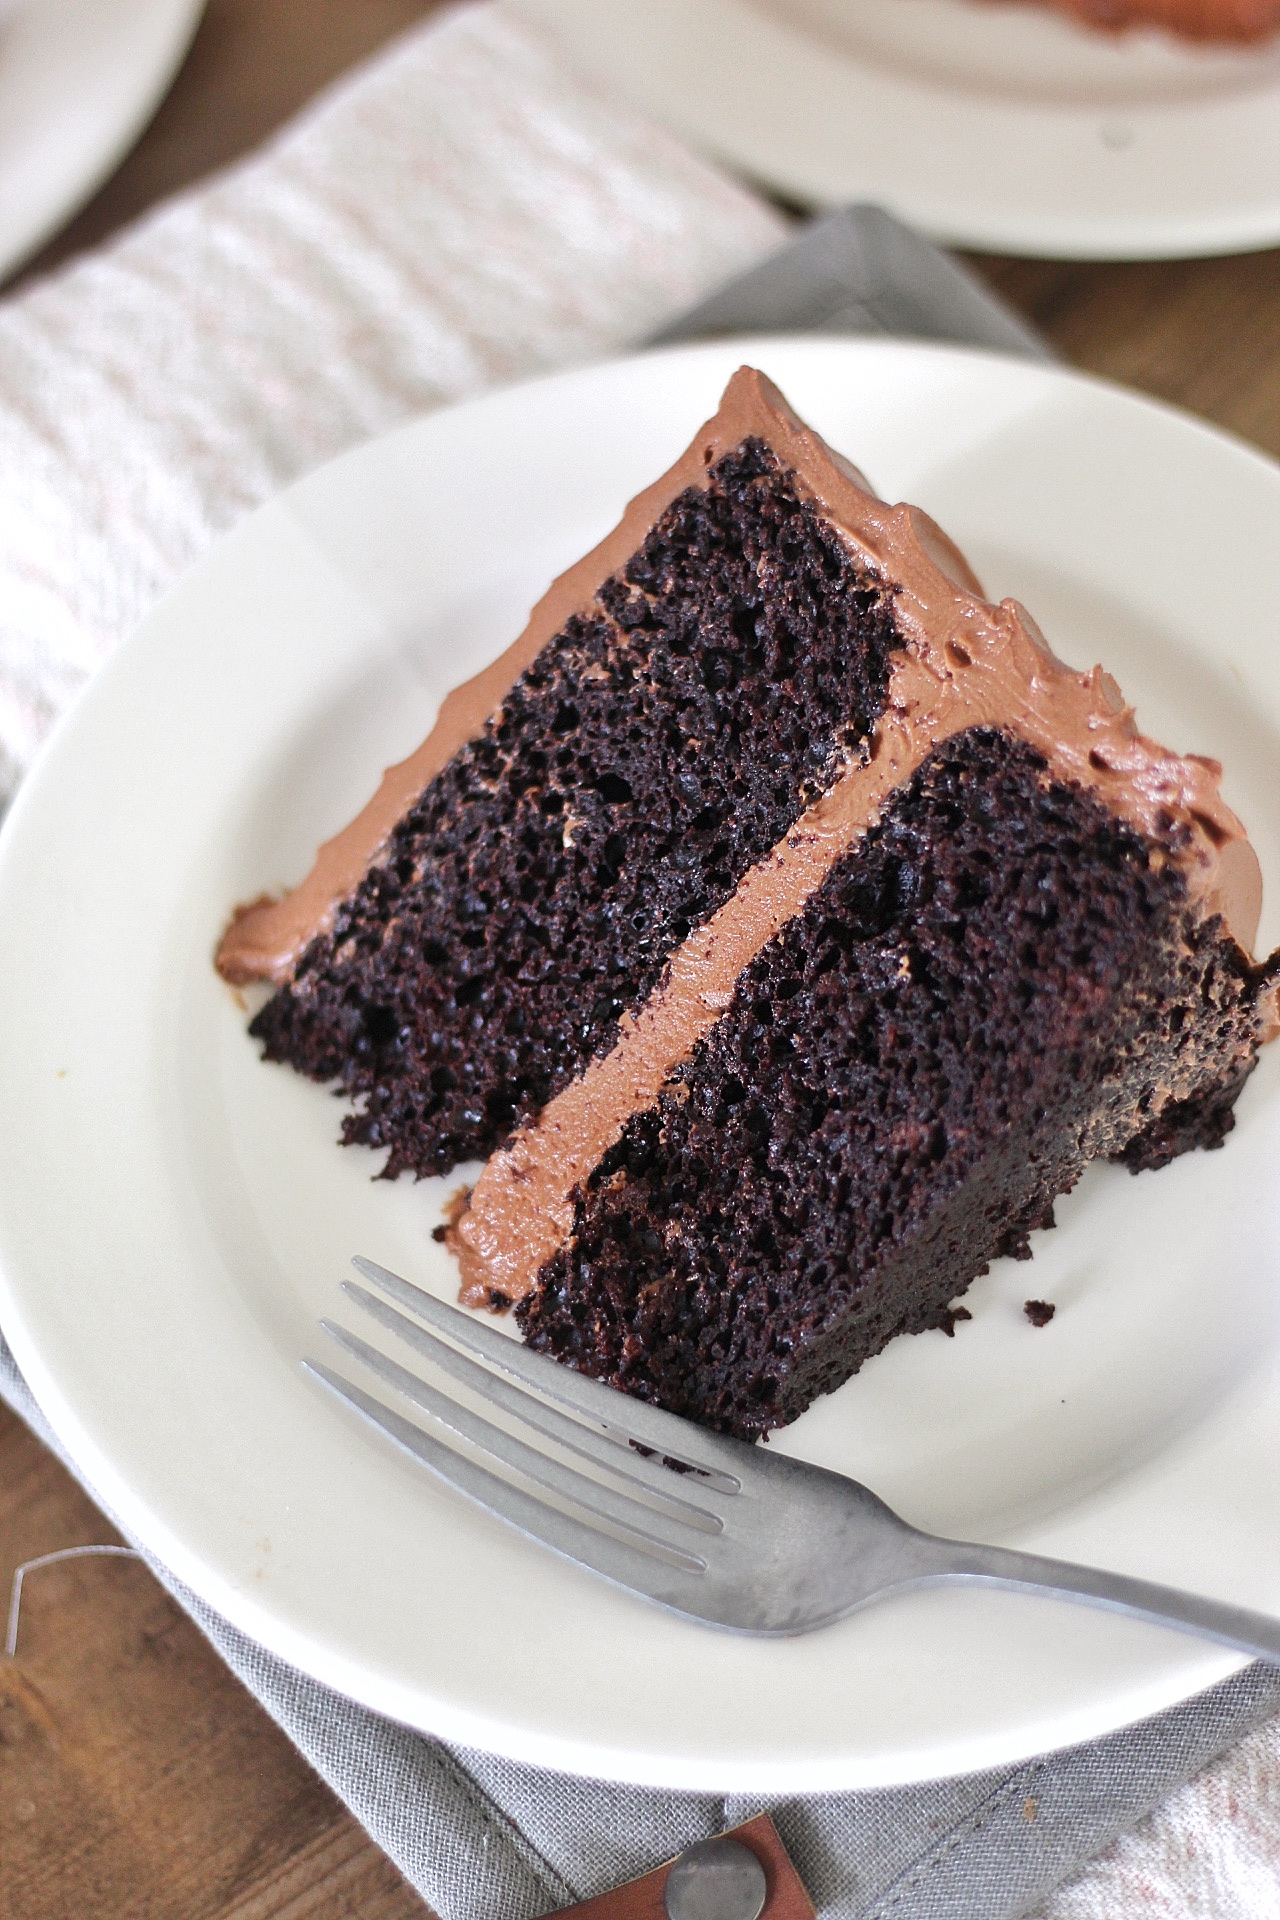 Take a look at how moist these chocolate cake layers are.